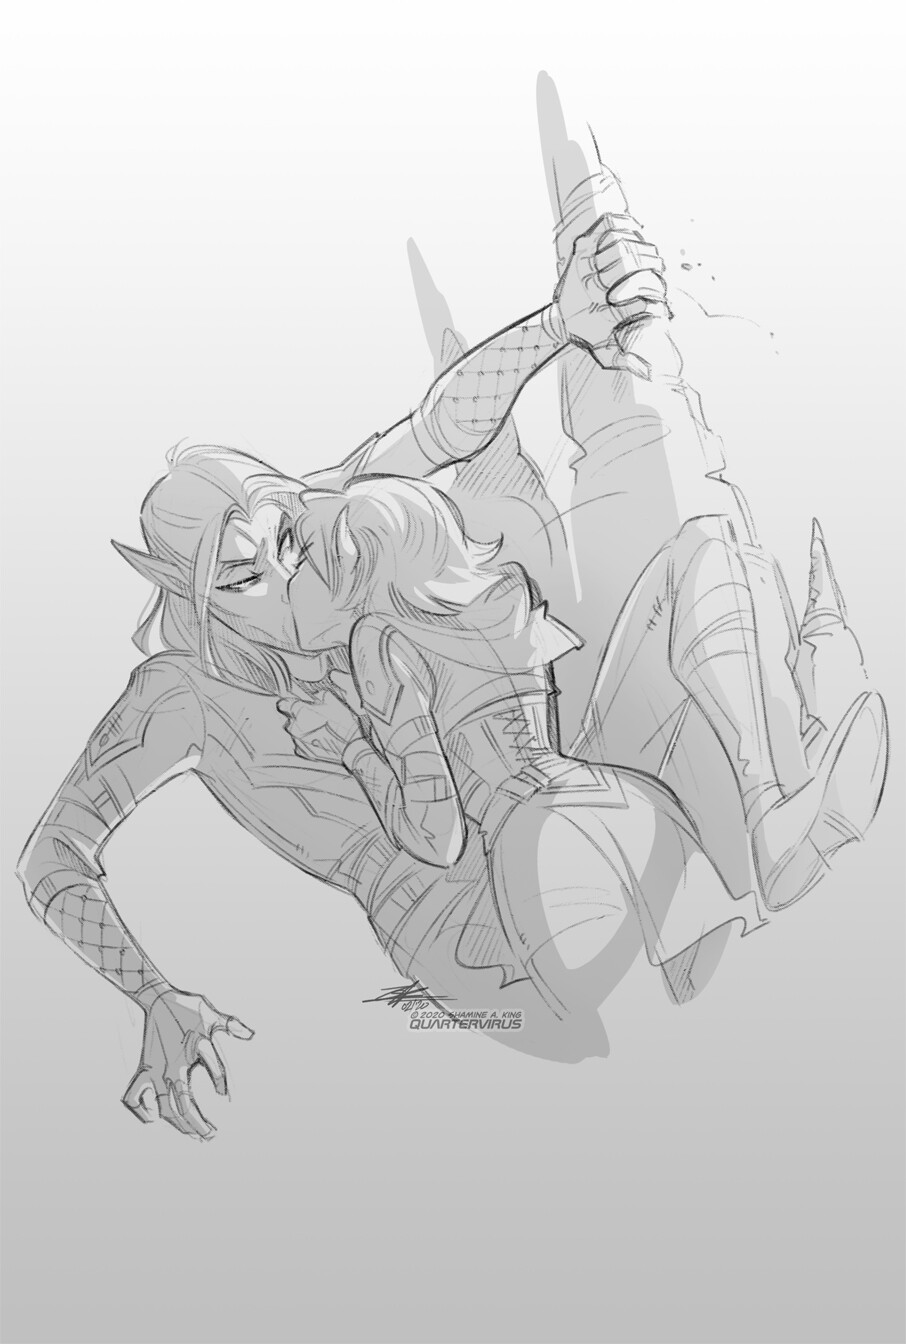 There are two ways Cassica can steal kisses from Aezar, one involves climbing him like a tree and the other a running start  One has a far more satisfying landing